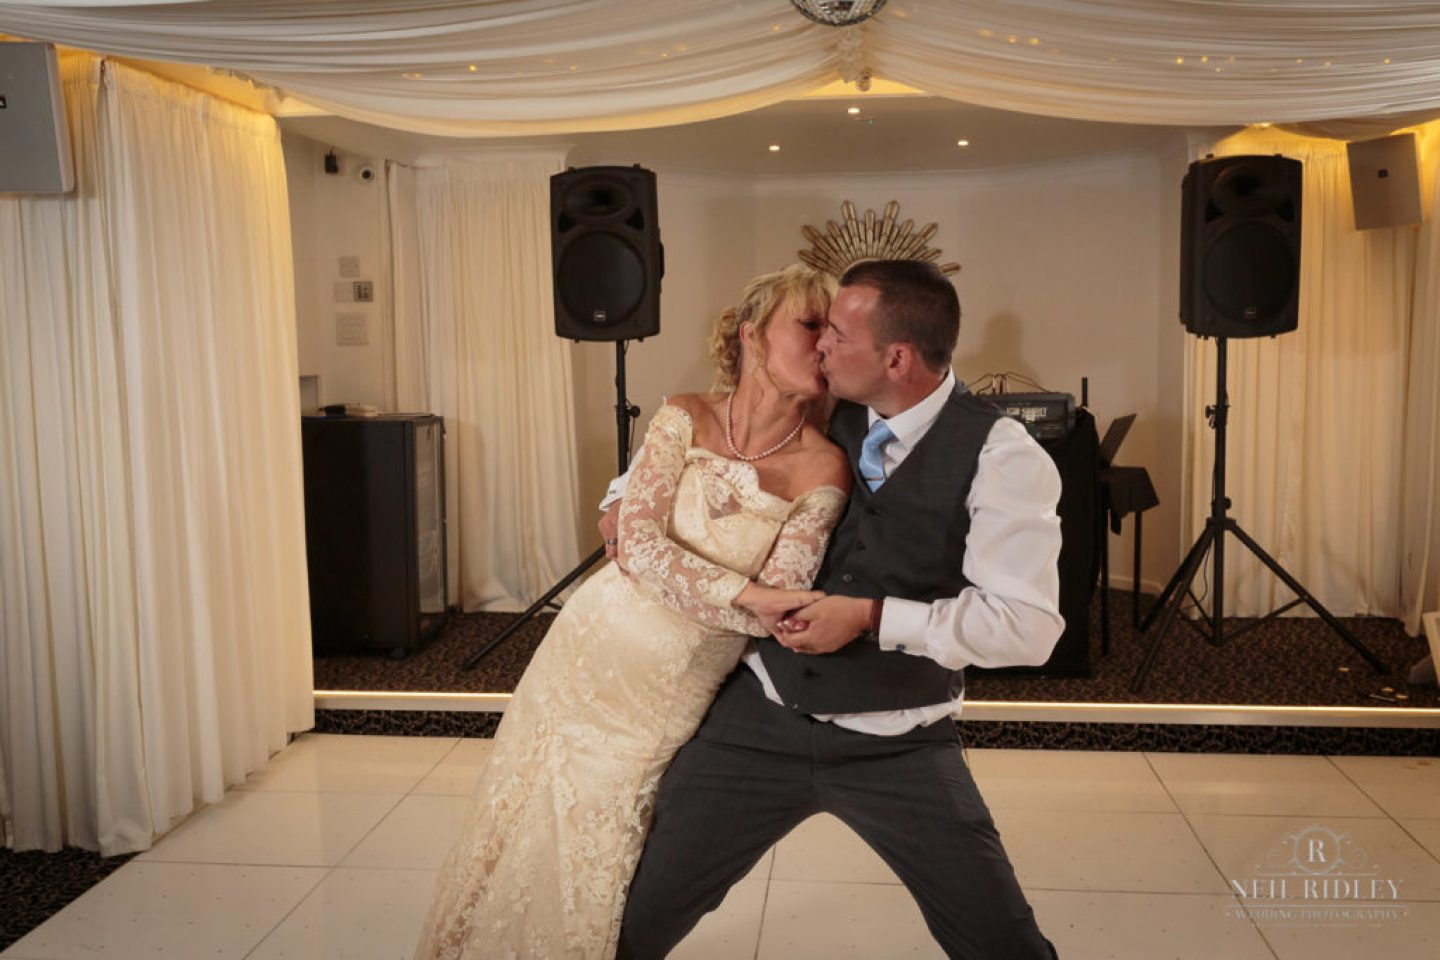 Bride and Groom on dance floor for First Dance at The Park House Hotel, Blackpool